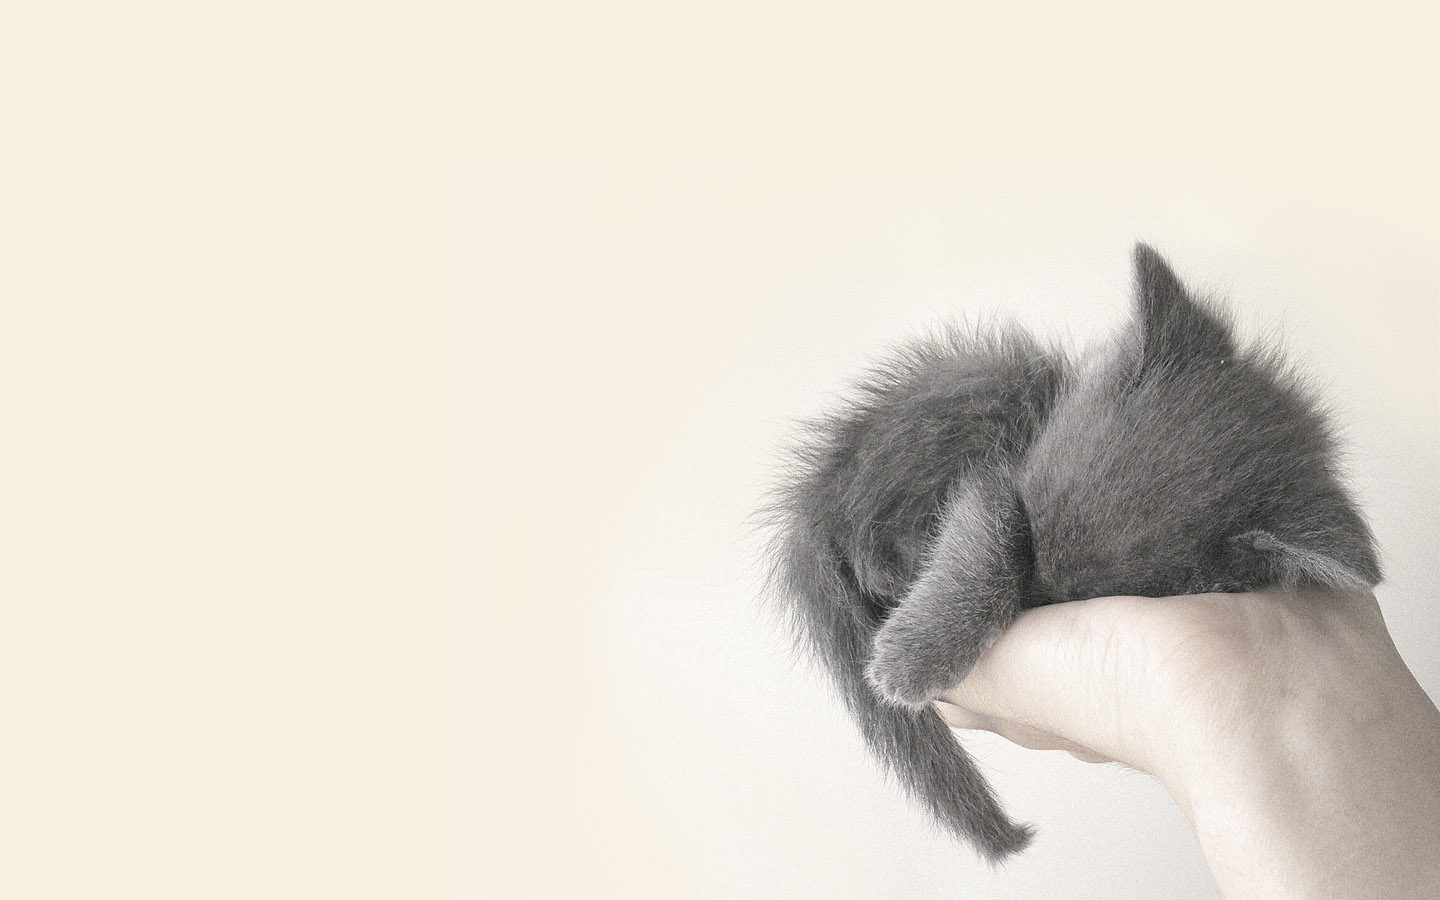 Cute Cat Hd Animals 4k Wallpapers Images Backgrounds Photos And